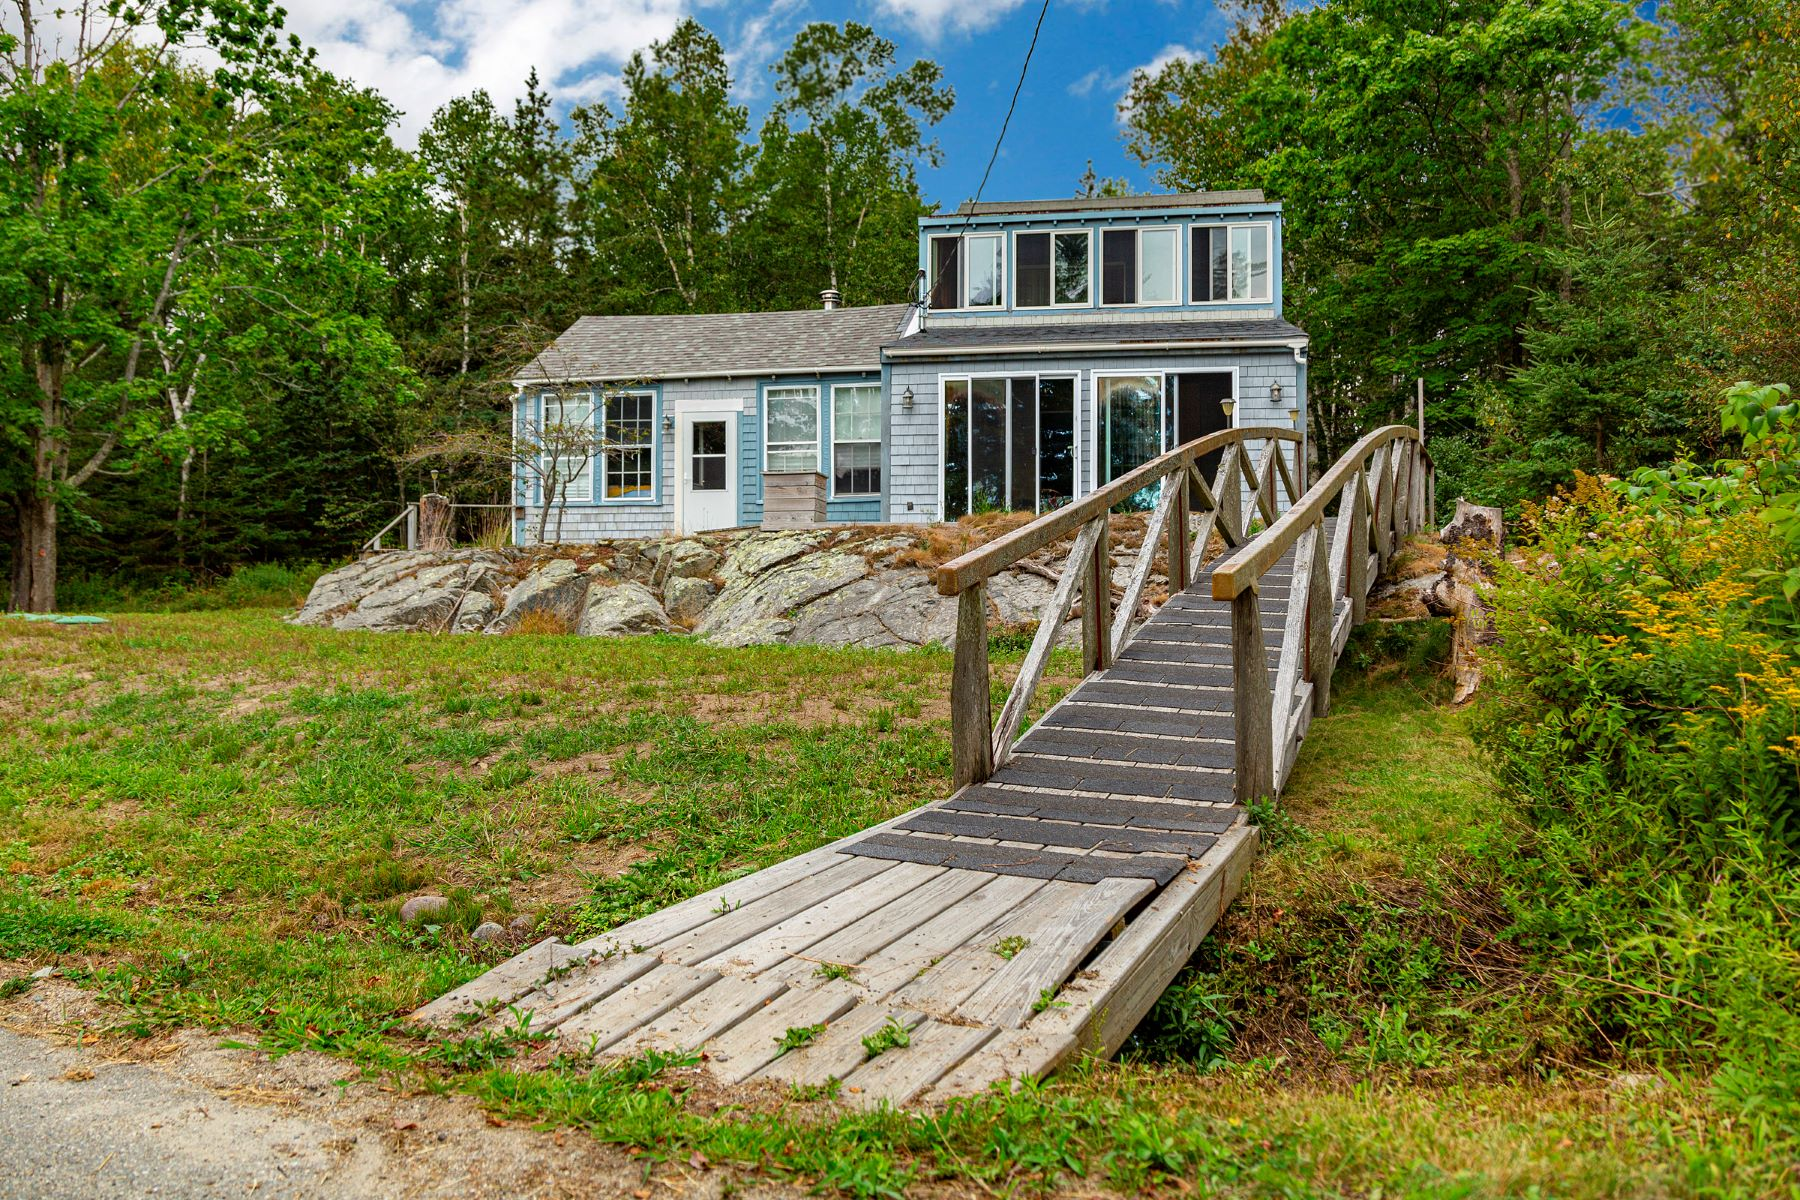 Single Family Homes for Active at On The Rocks 14 Main Street, Islesford Cranberry Isles, Maine 04646 United States